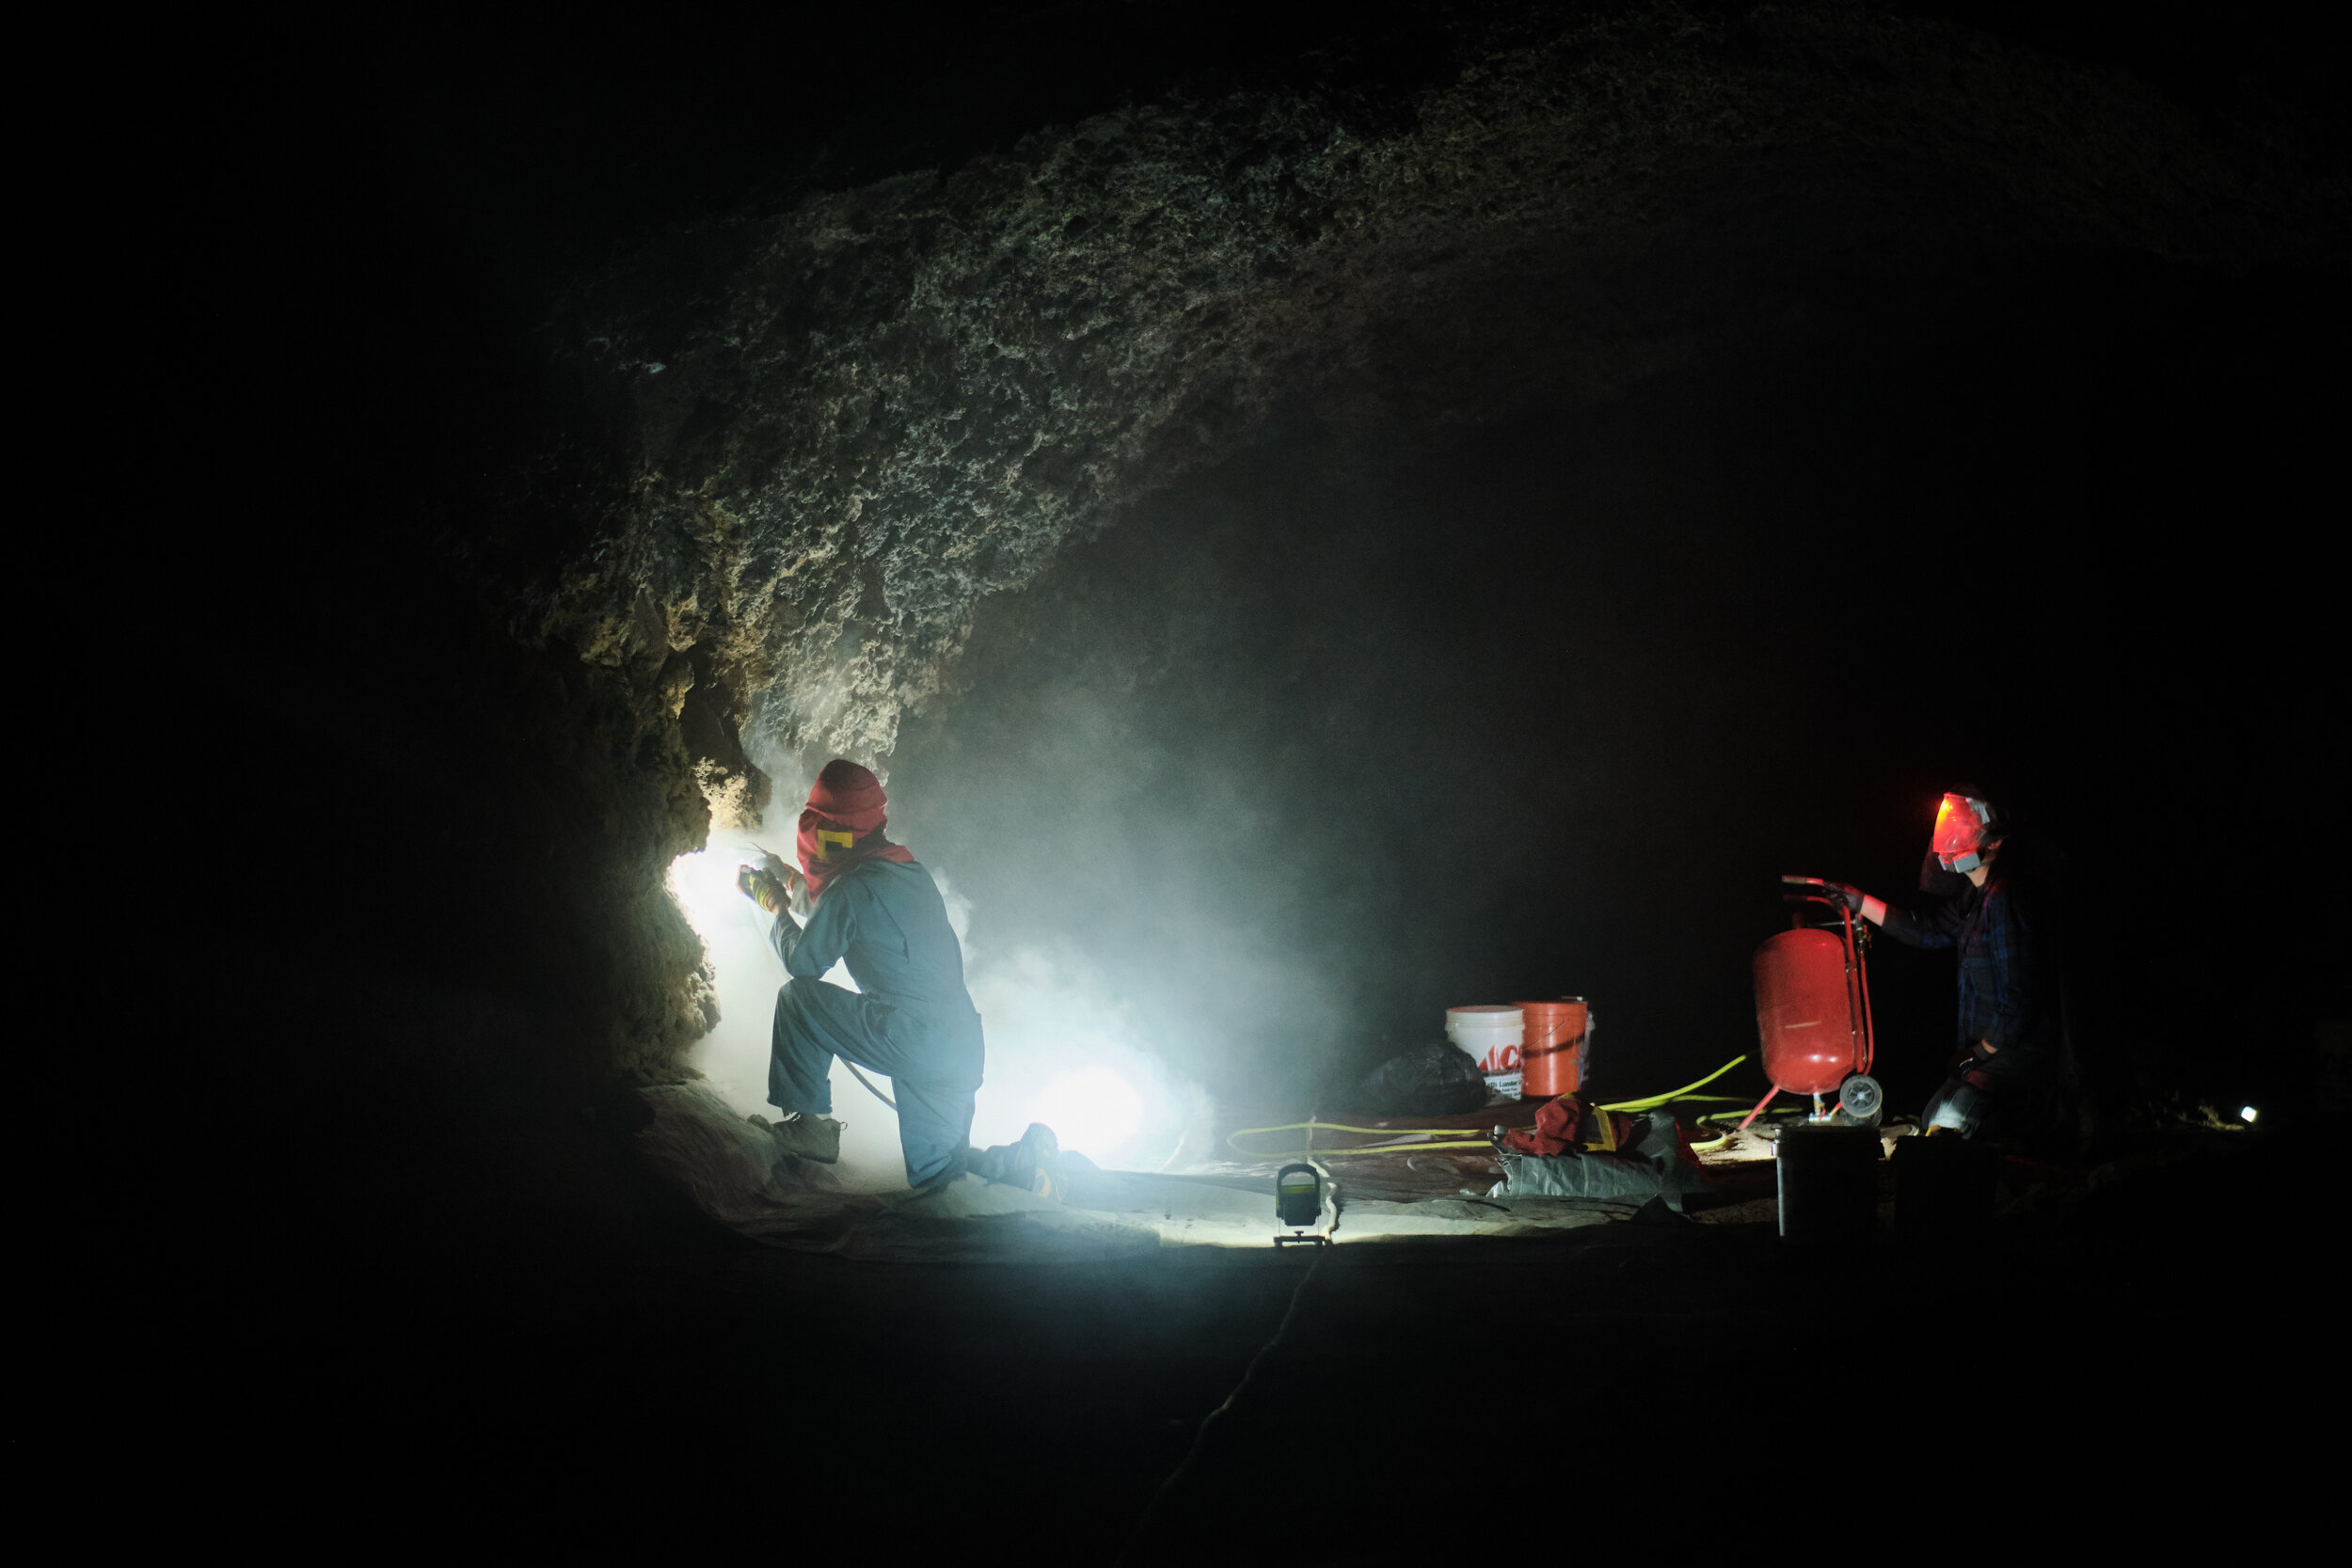 Cave Clean up - Cleaning cave walls - Photo by Drew Pick.jpg